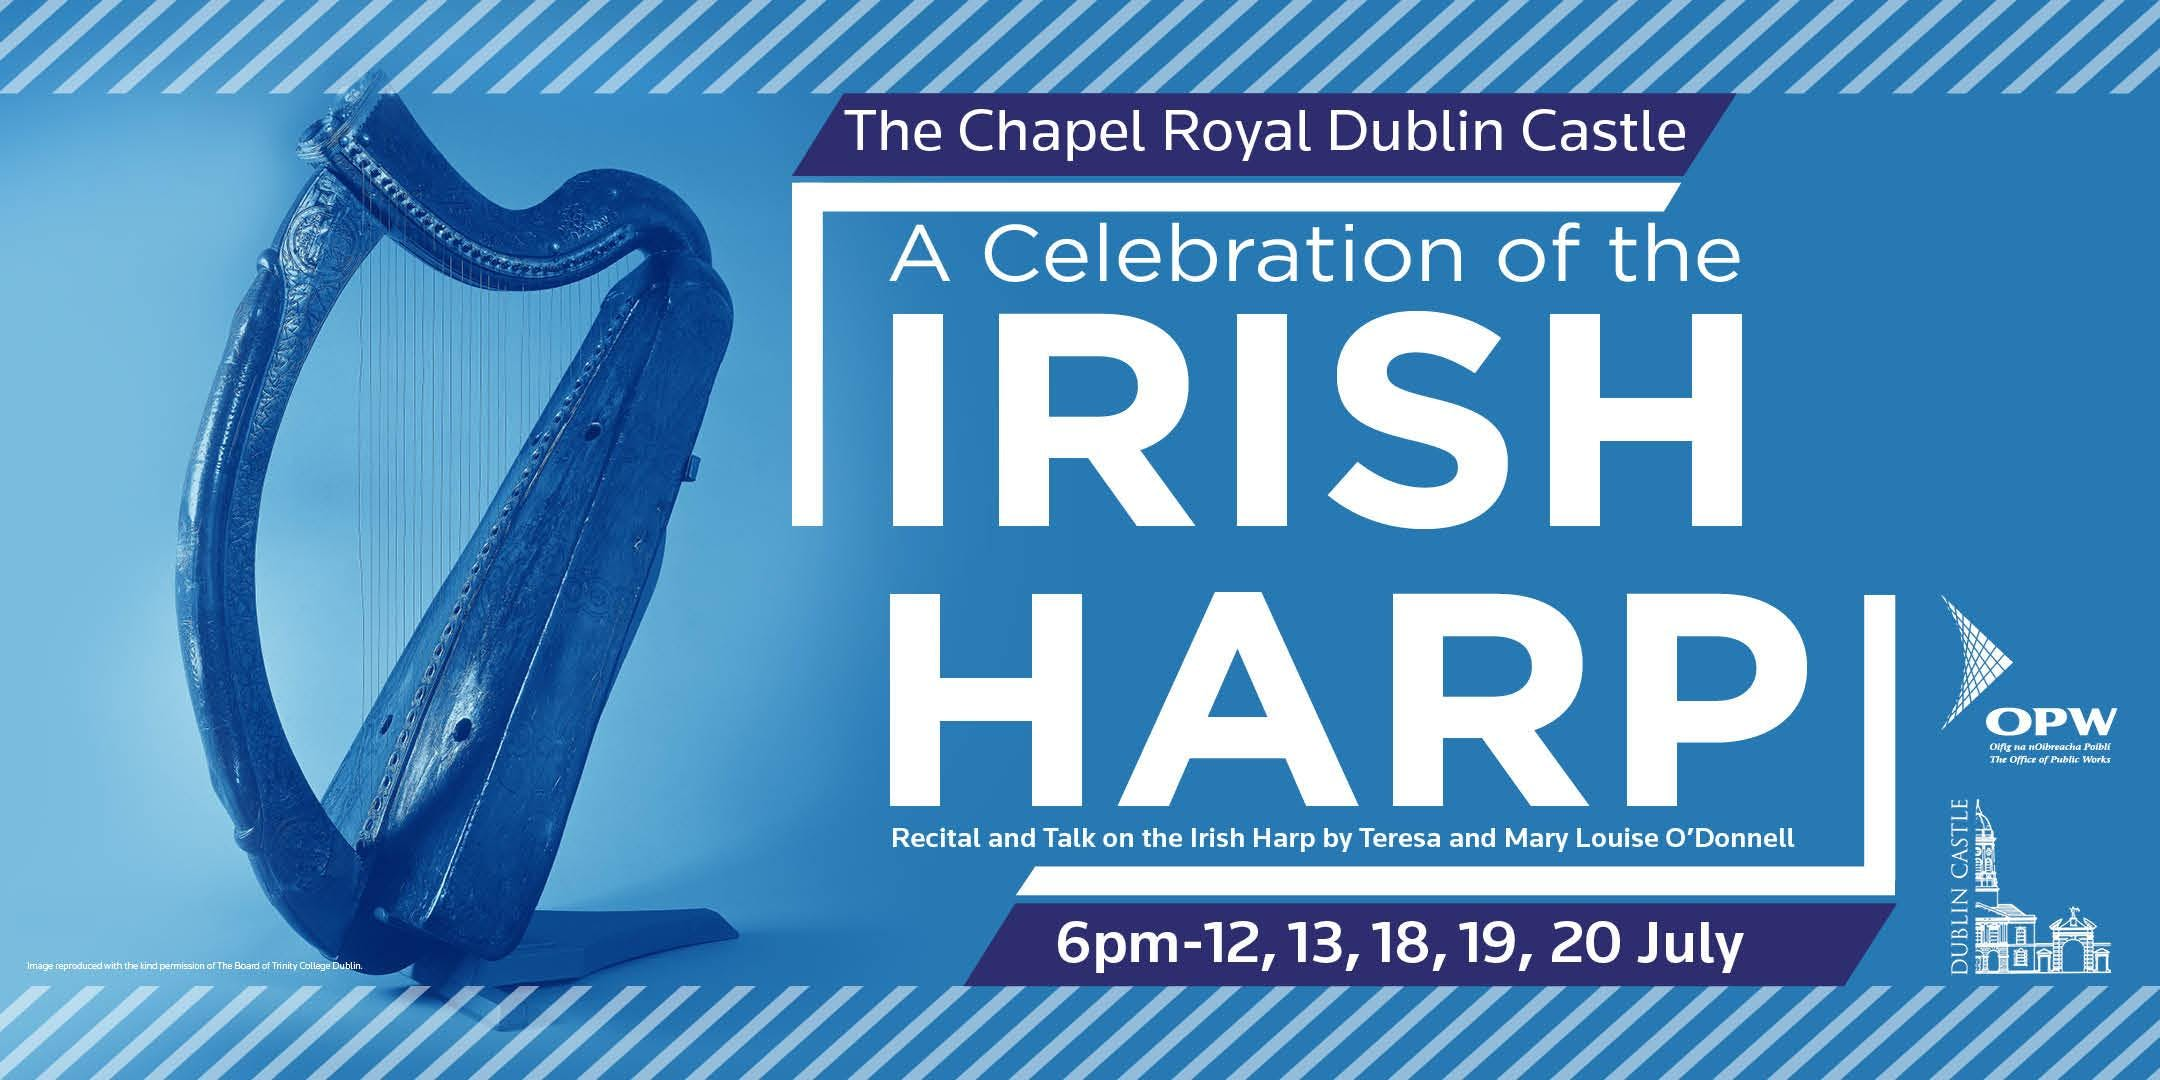 A Celebration of the Irish Harp